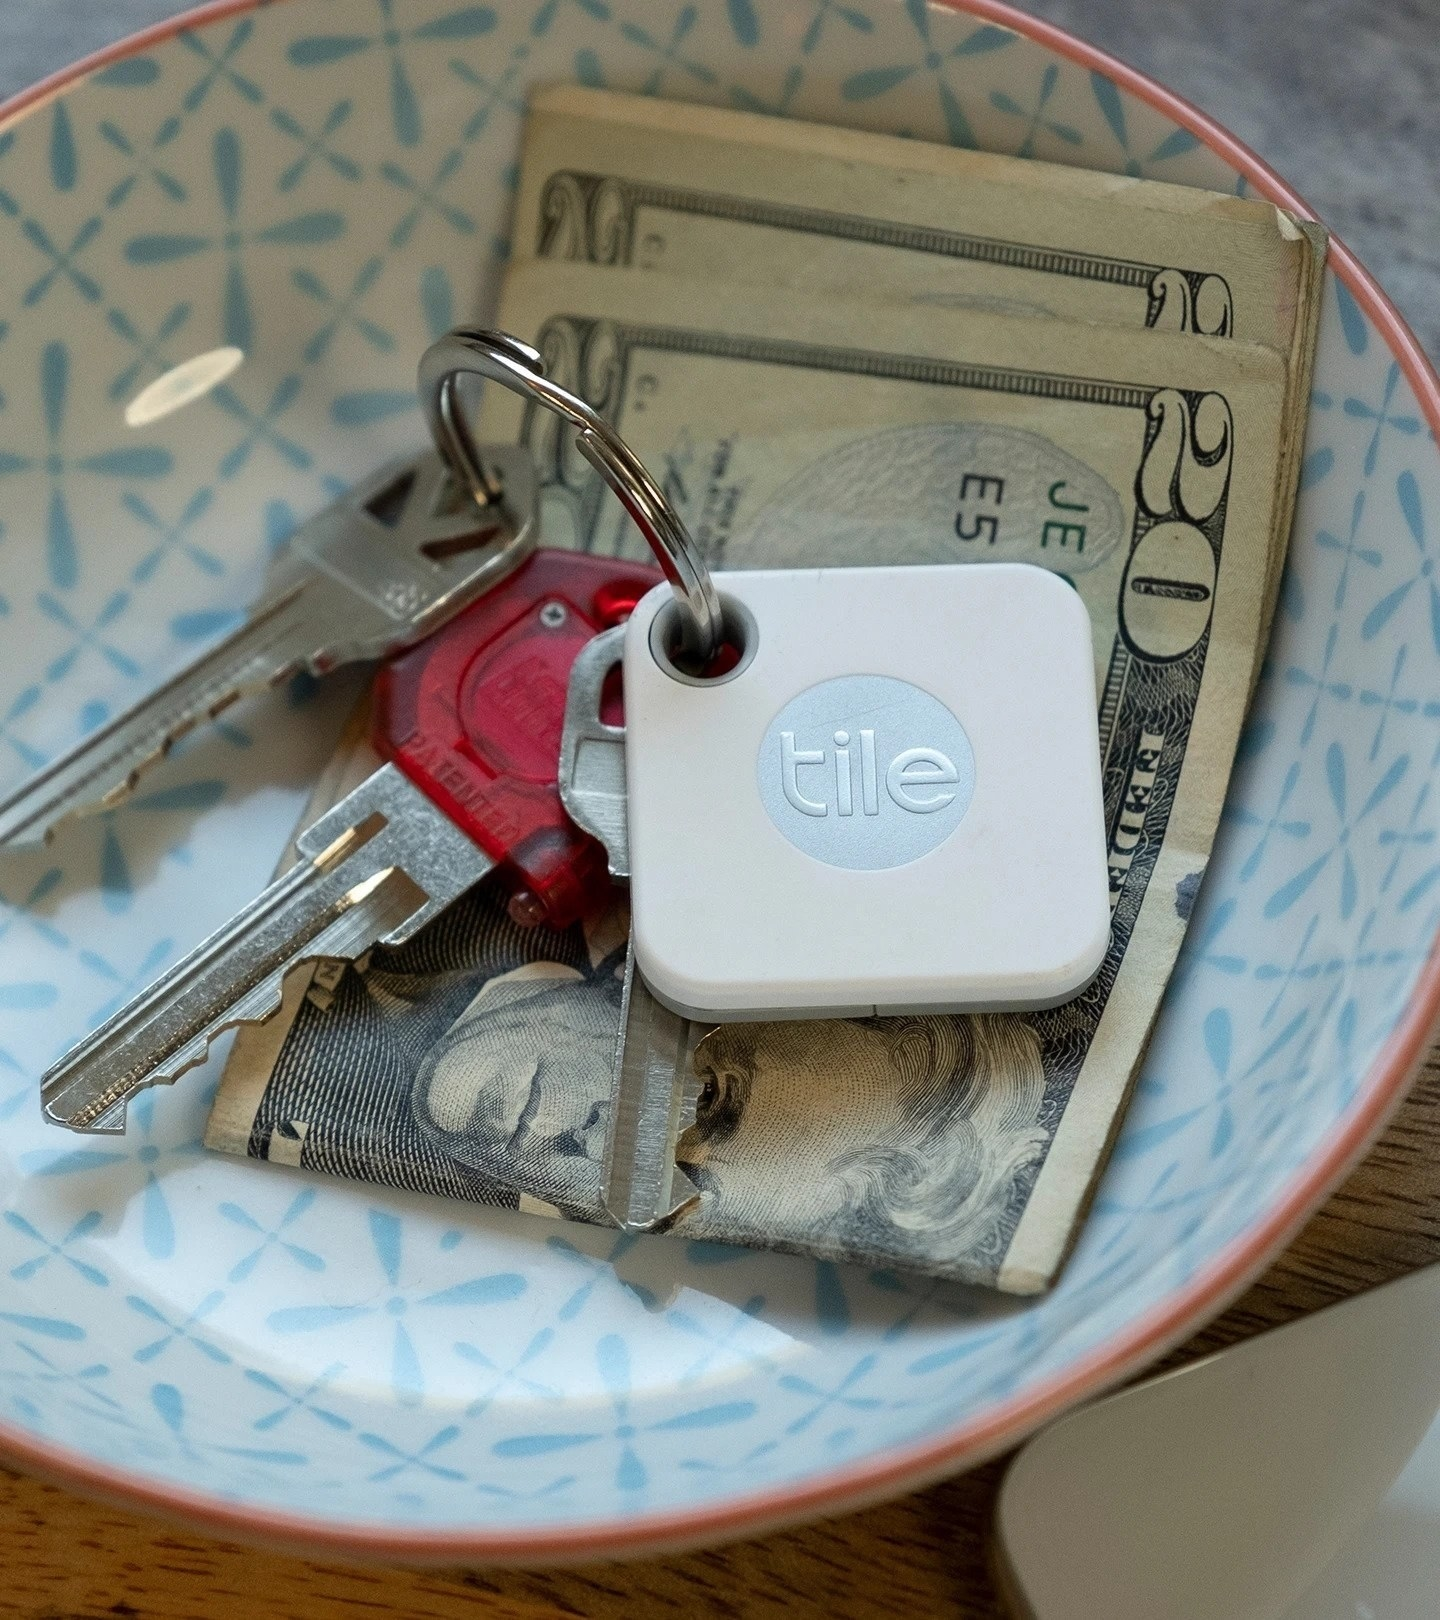 the Tile attacked to a ring of keys in a bowl